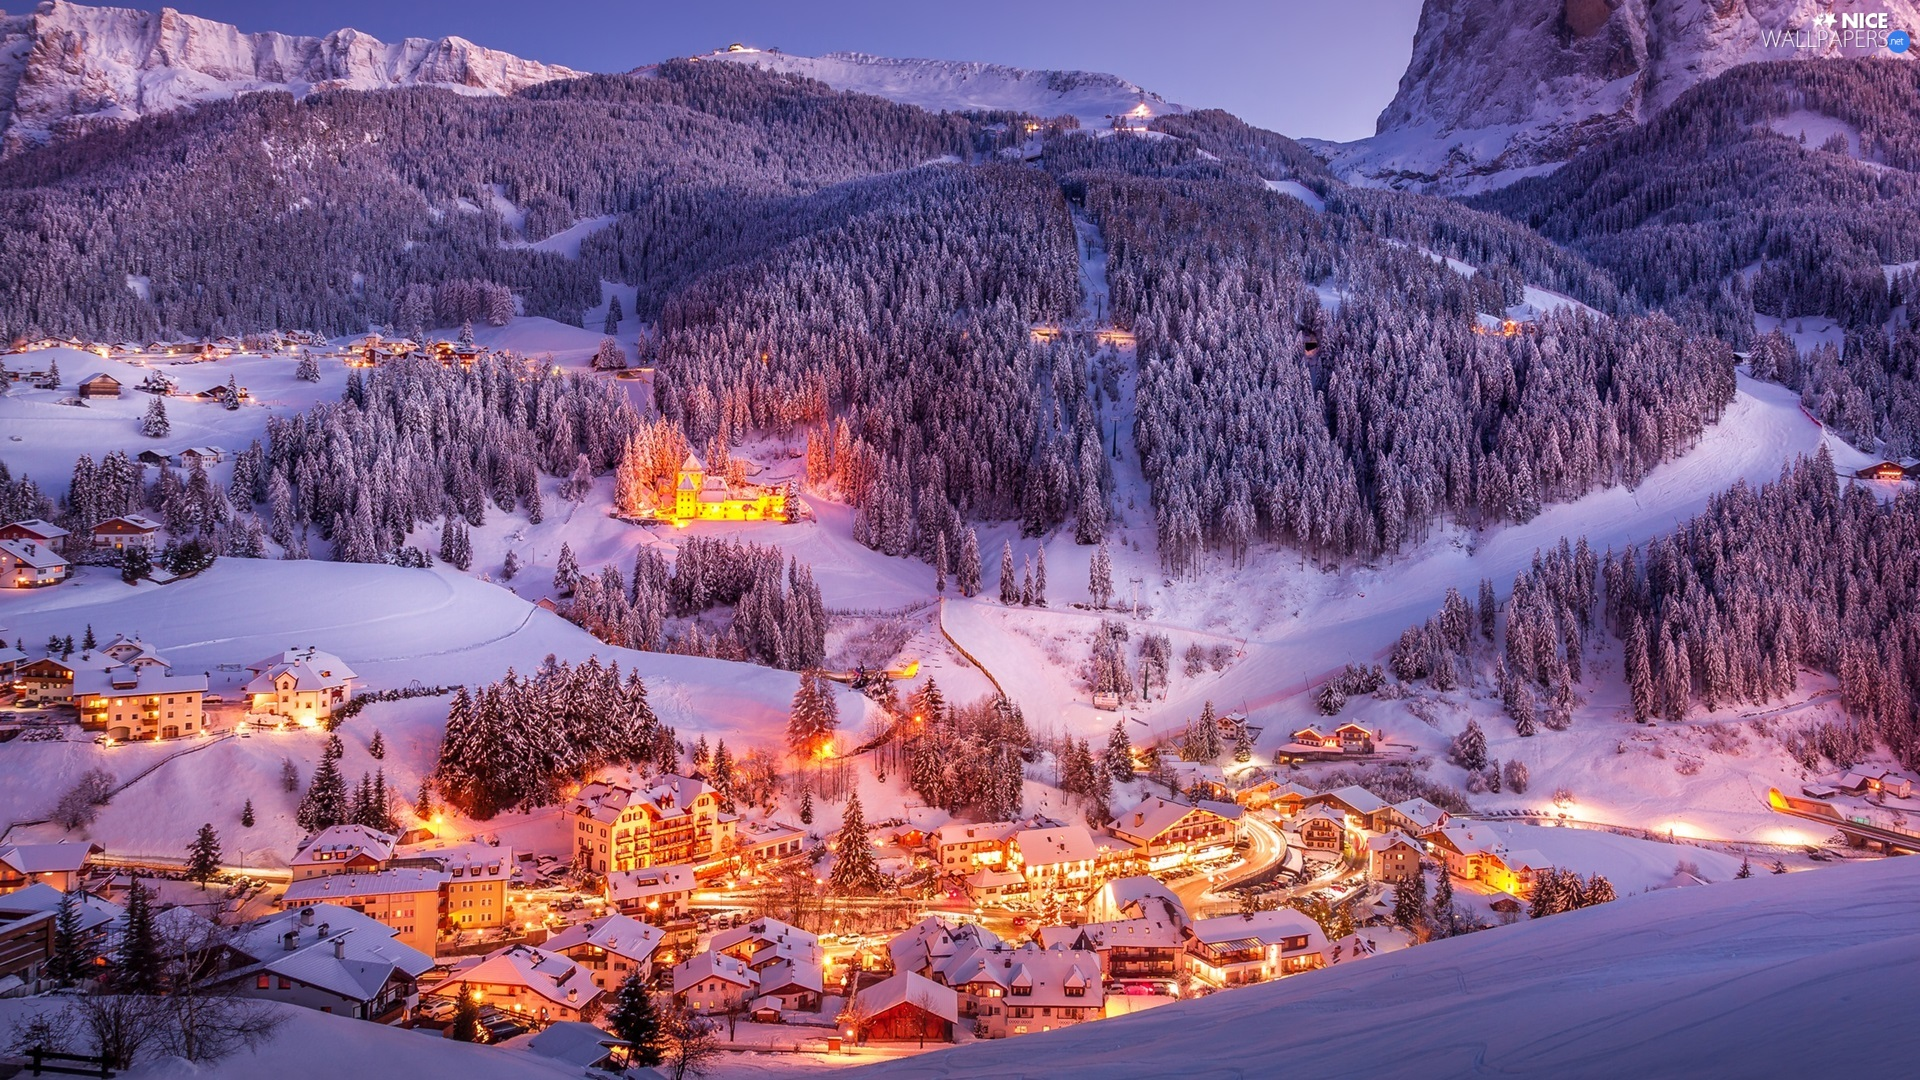 woods, Mountains, Valley, Town, light, winter, trees, viewes, Houses